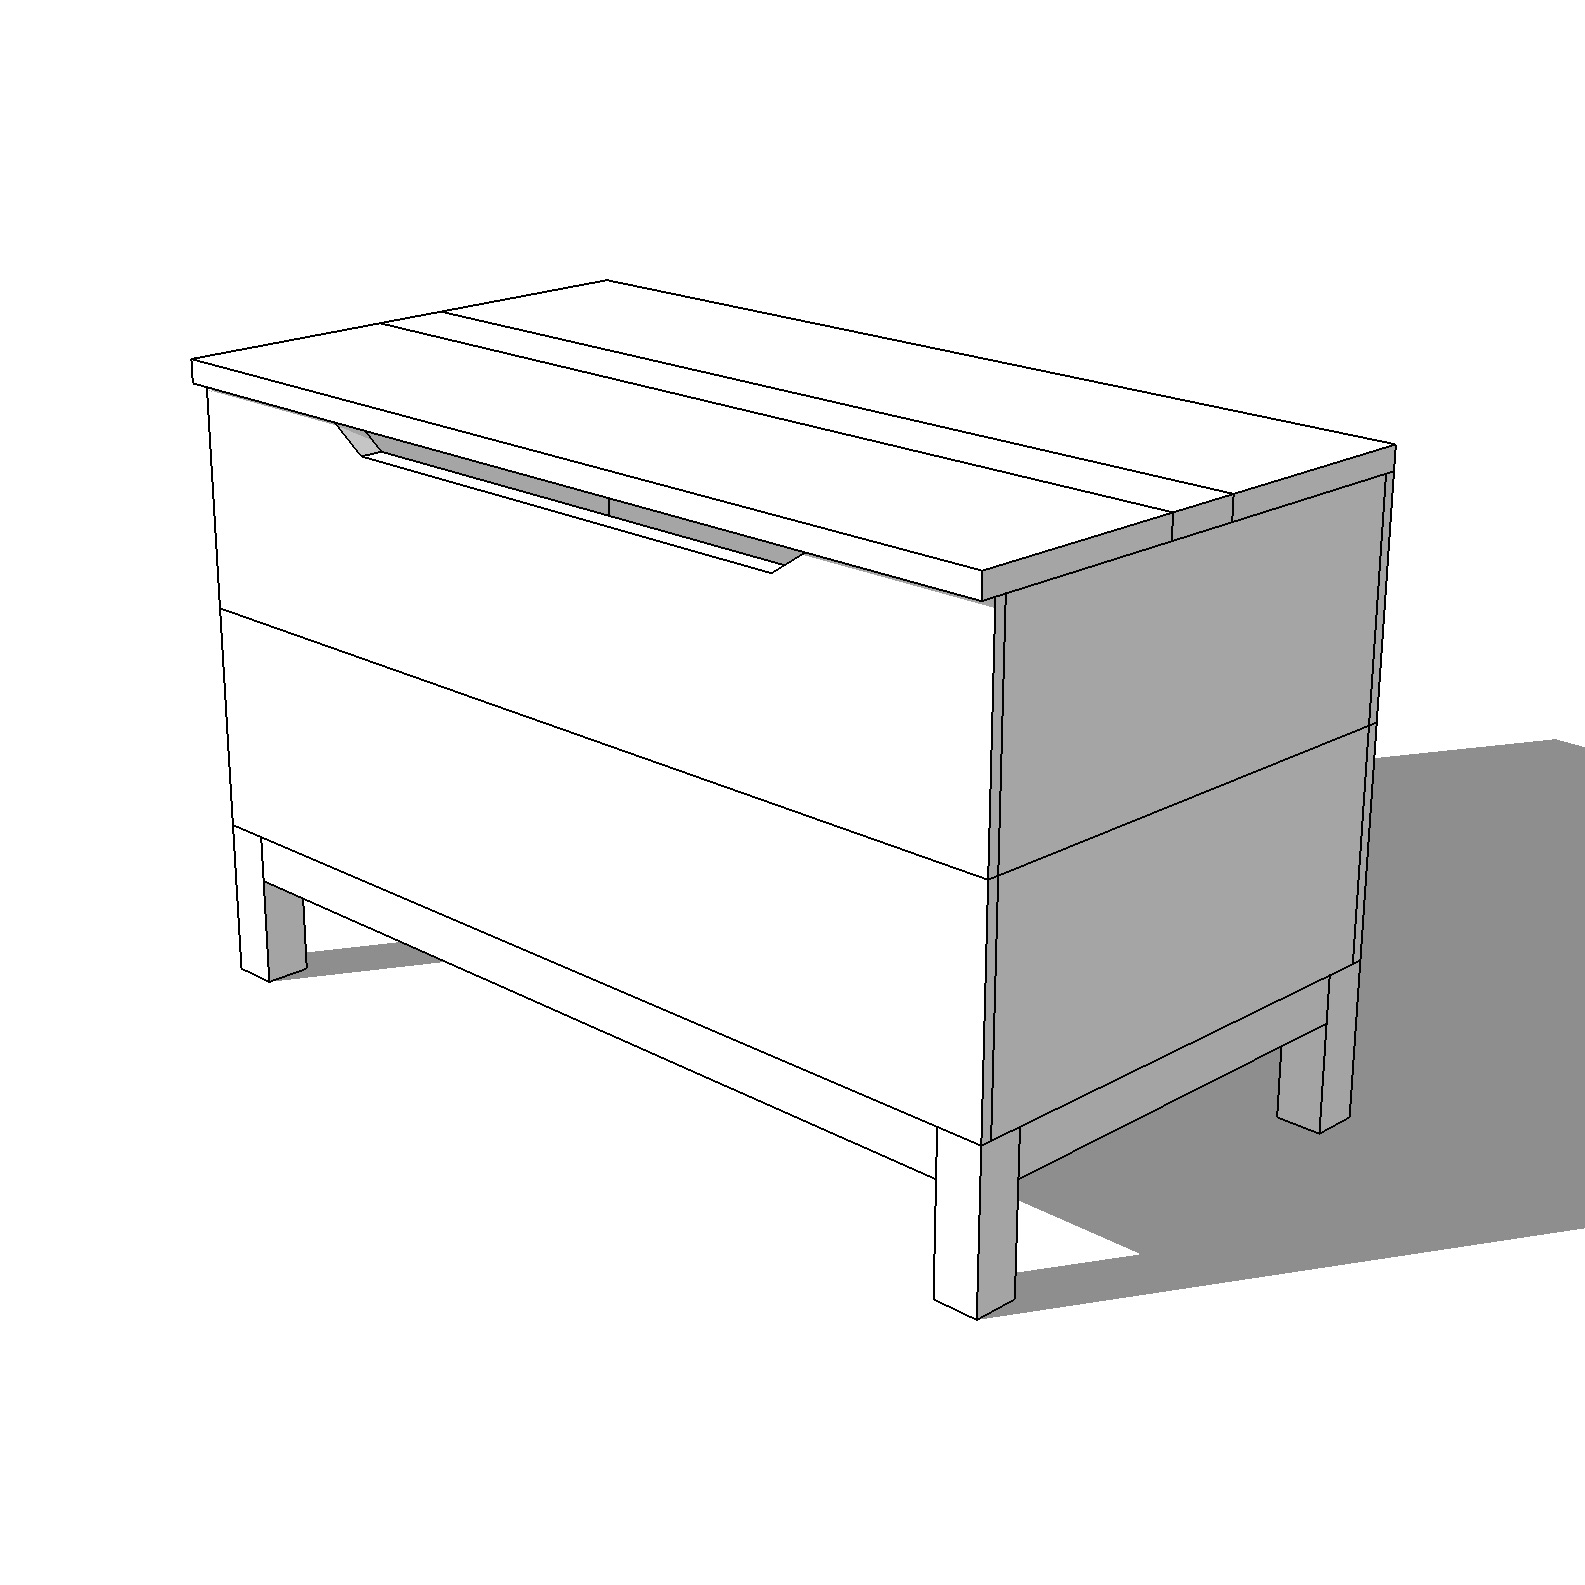 Diy Modern Blanket Chest Or Toy Box Plans Crafted Workshop